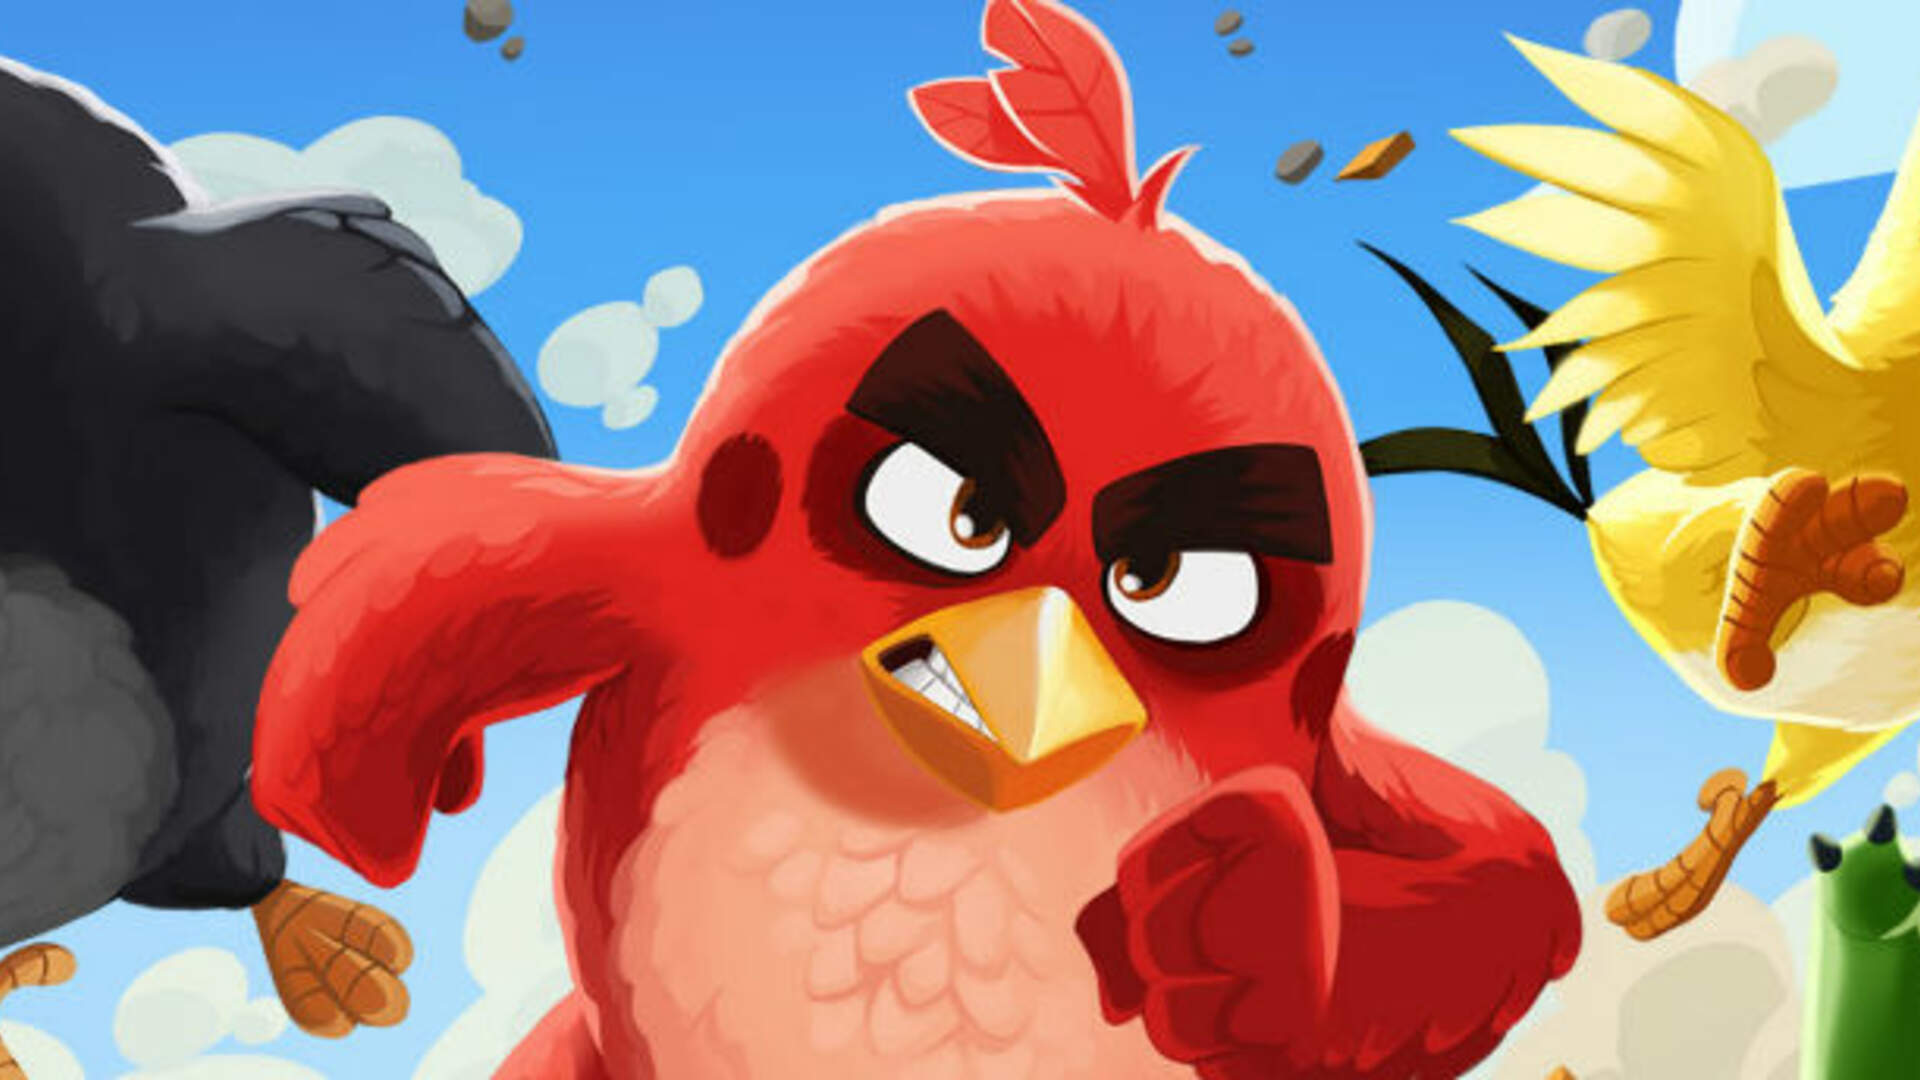 Angry Birds Relying More on Merchandise and Candy, Less on Games